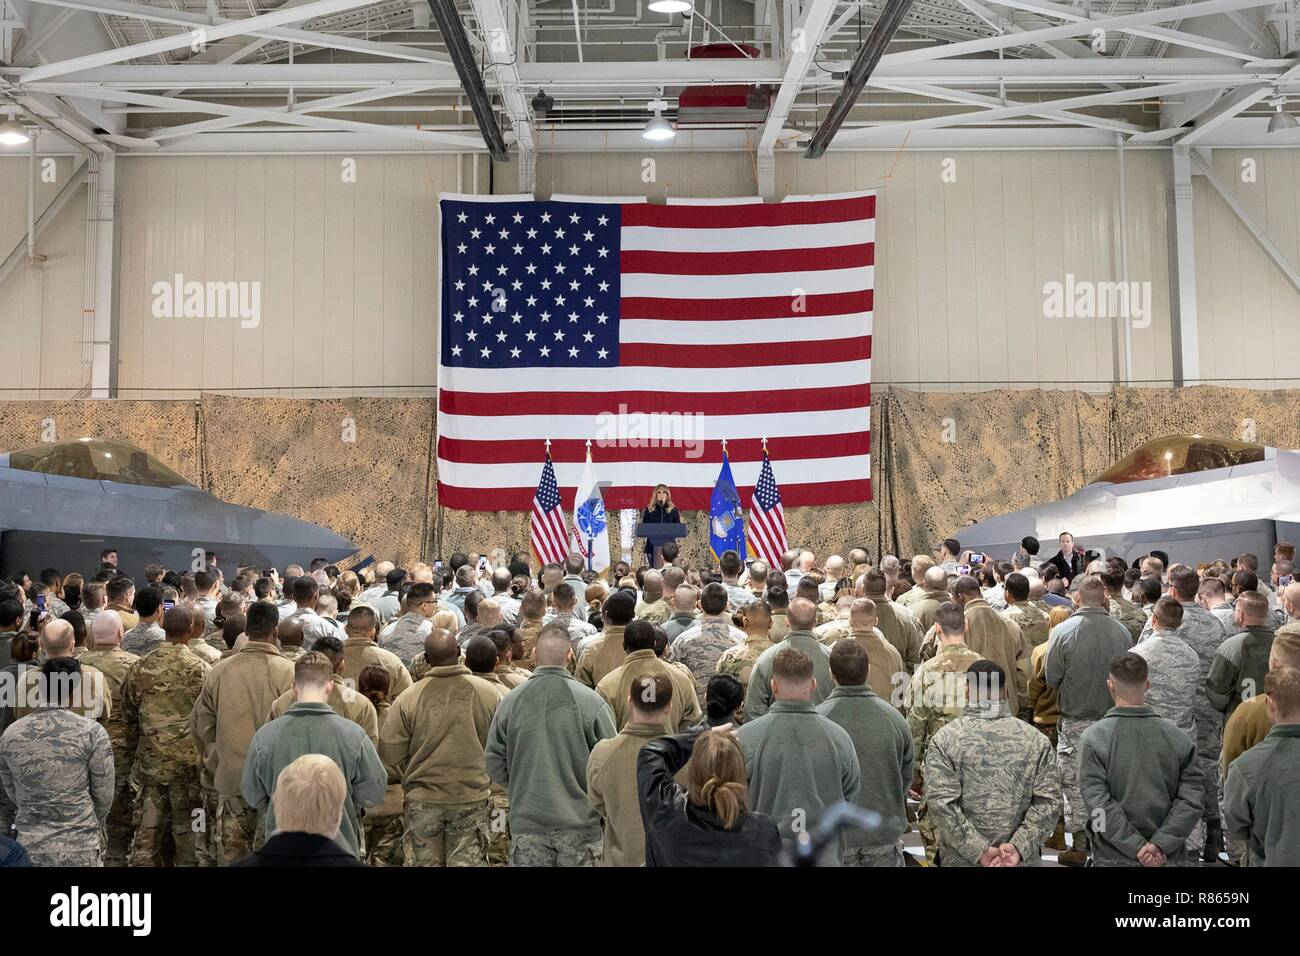 U.S. First Lady Melania Trump delivers remarks to service members and their families gathered in Hangar 789  during a holiday visit to Langley Air Force Base December 12, 2018 in Hampton, Virginia. - Stock Image